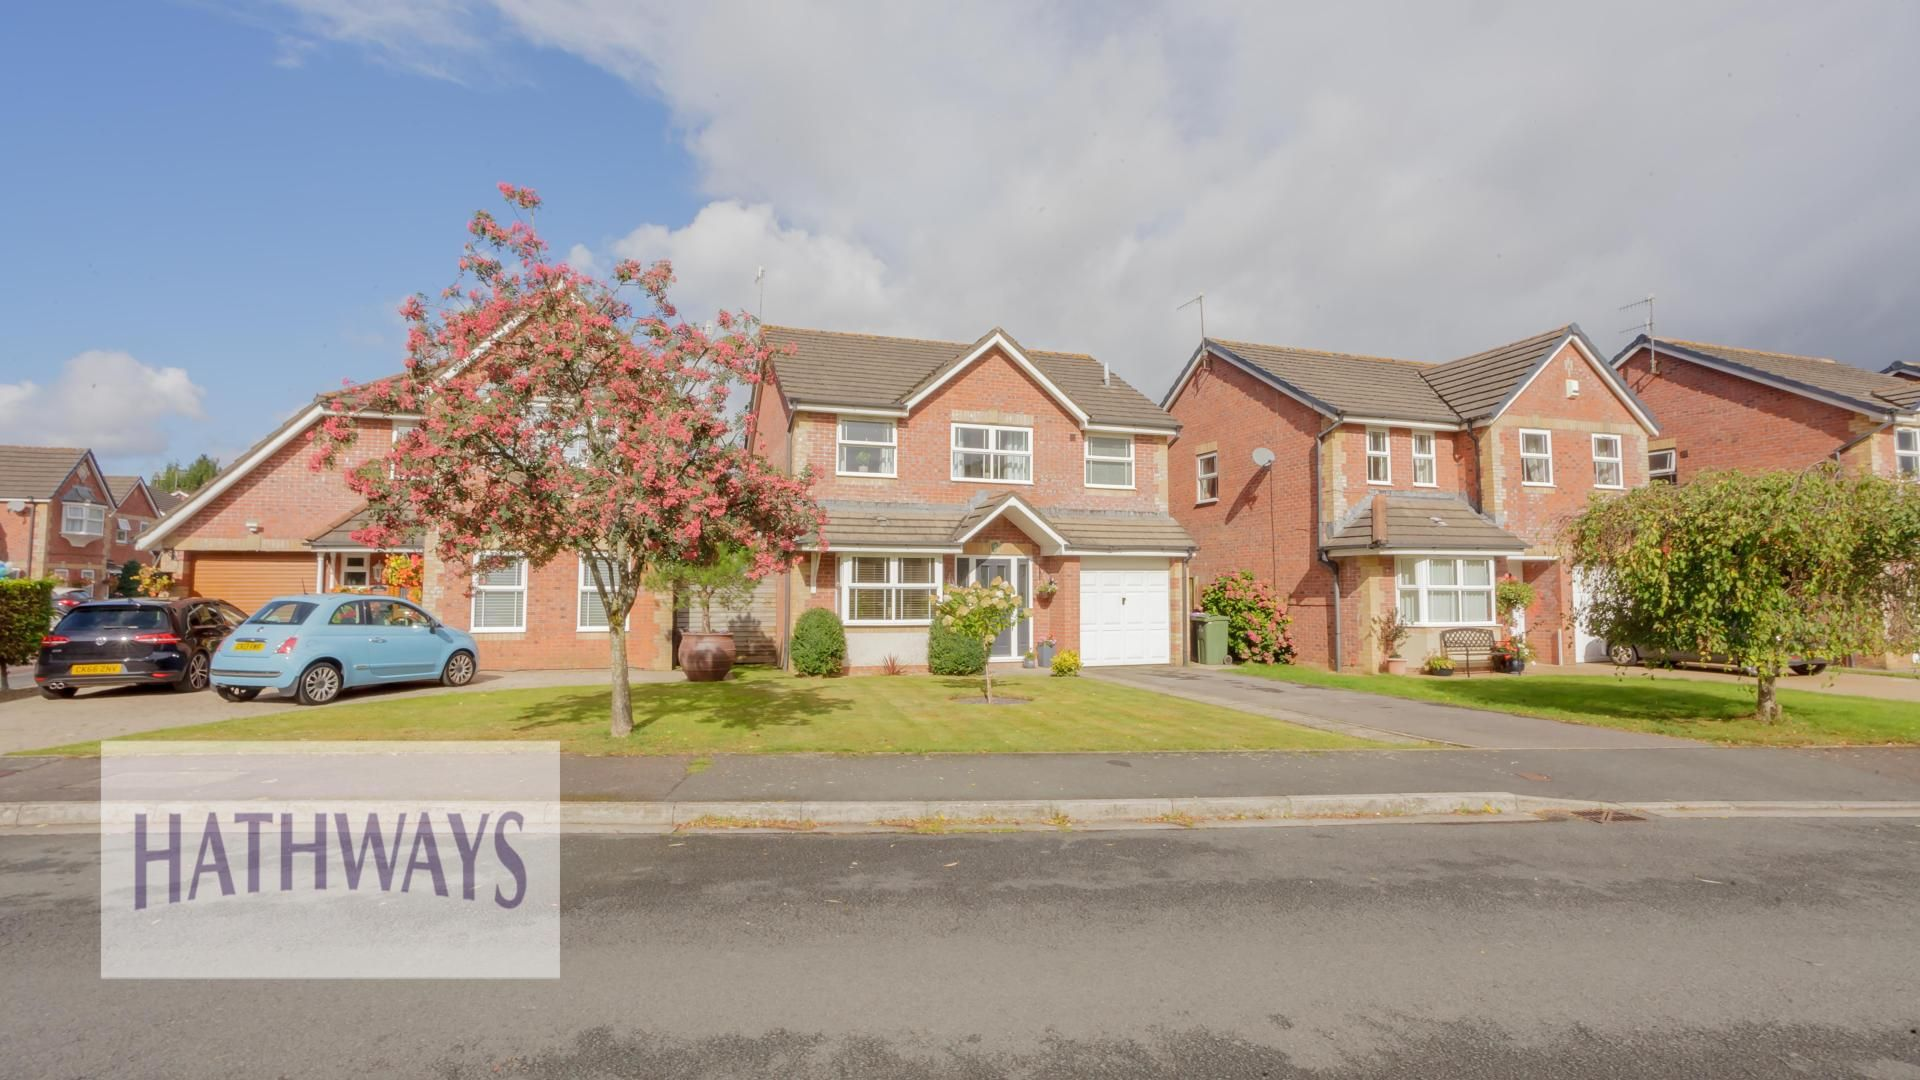 4 bed house for sale in Barnfield, NP18